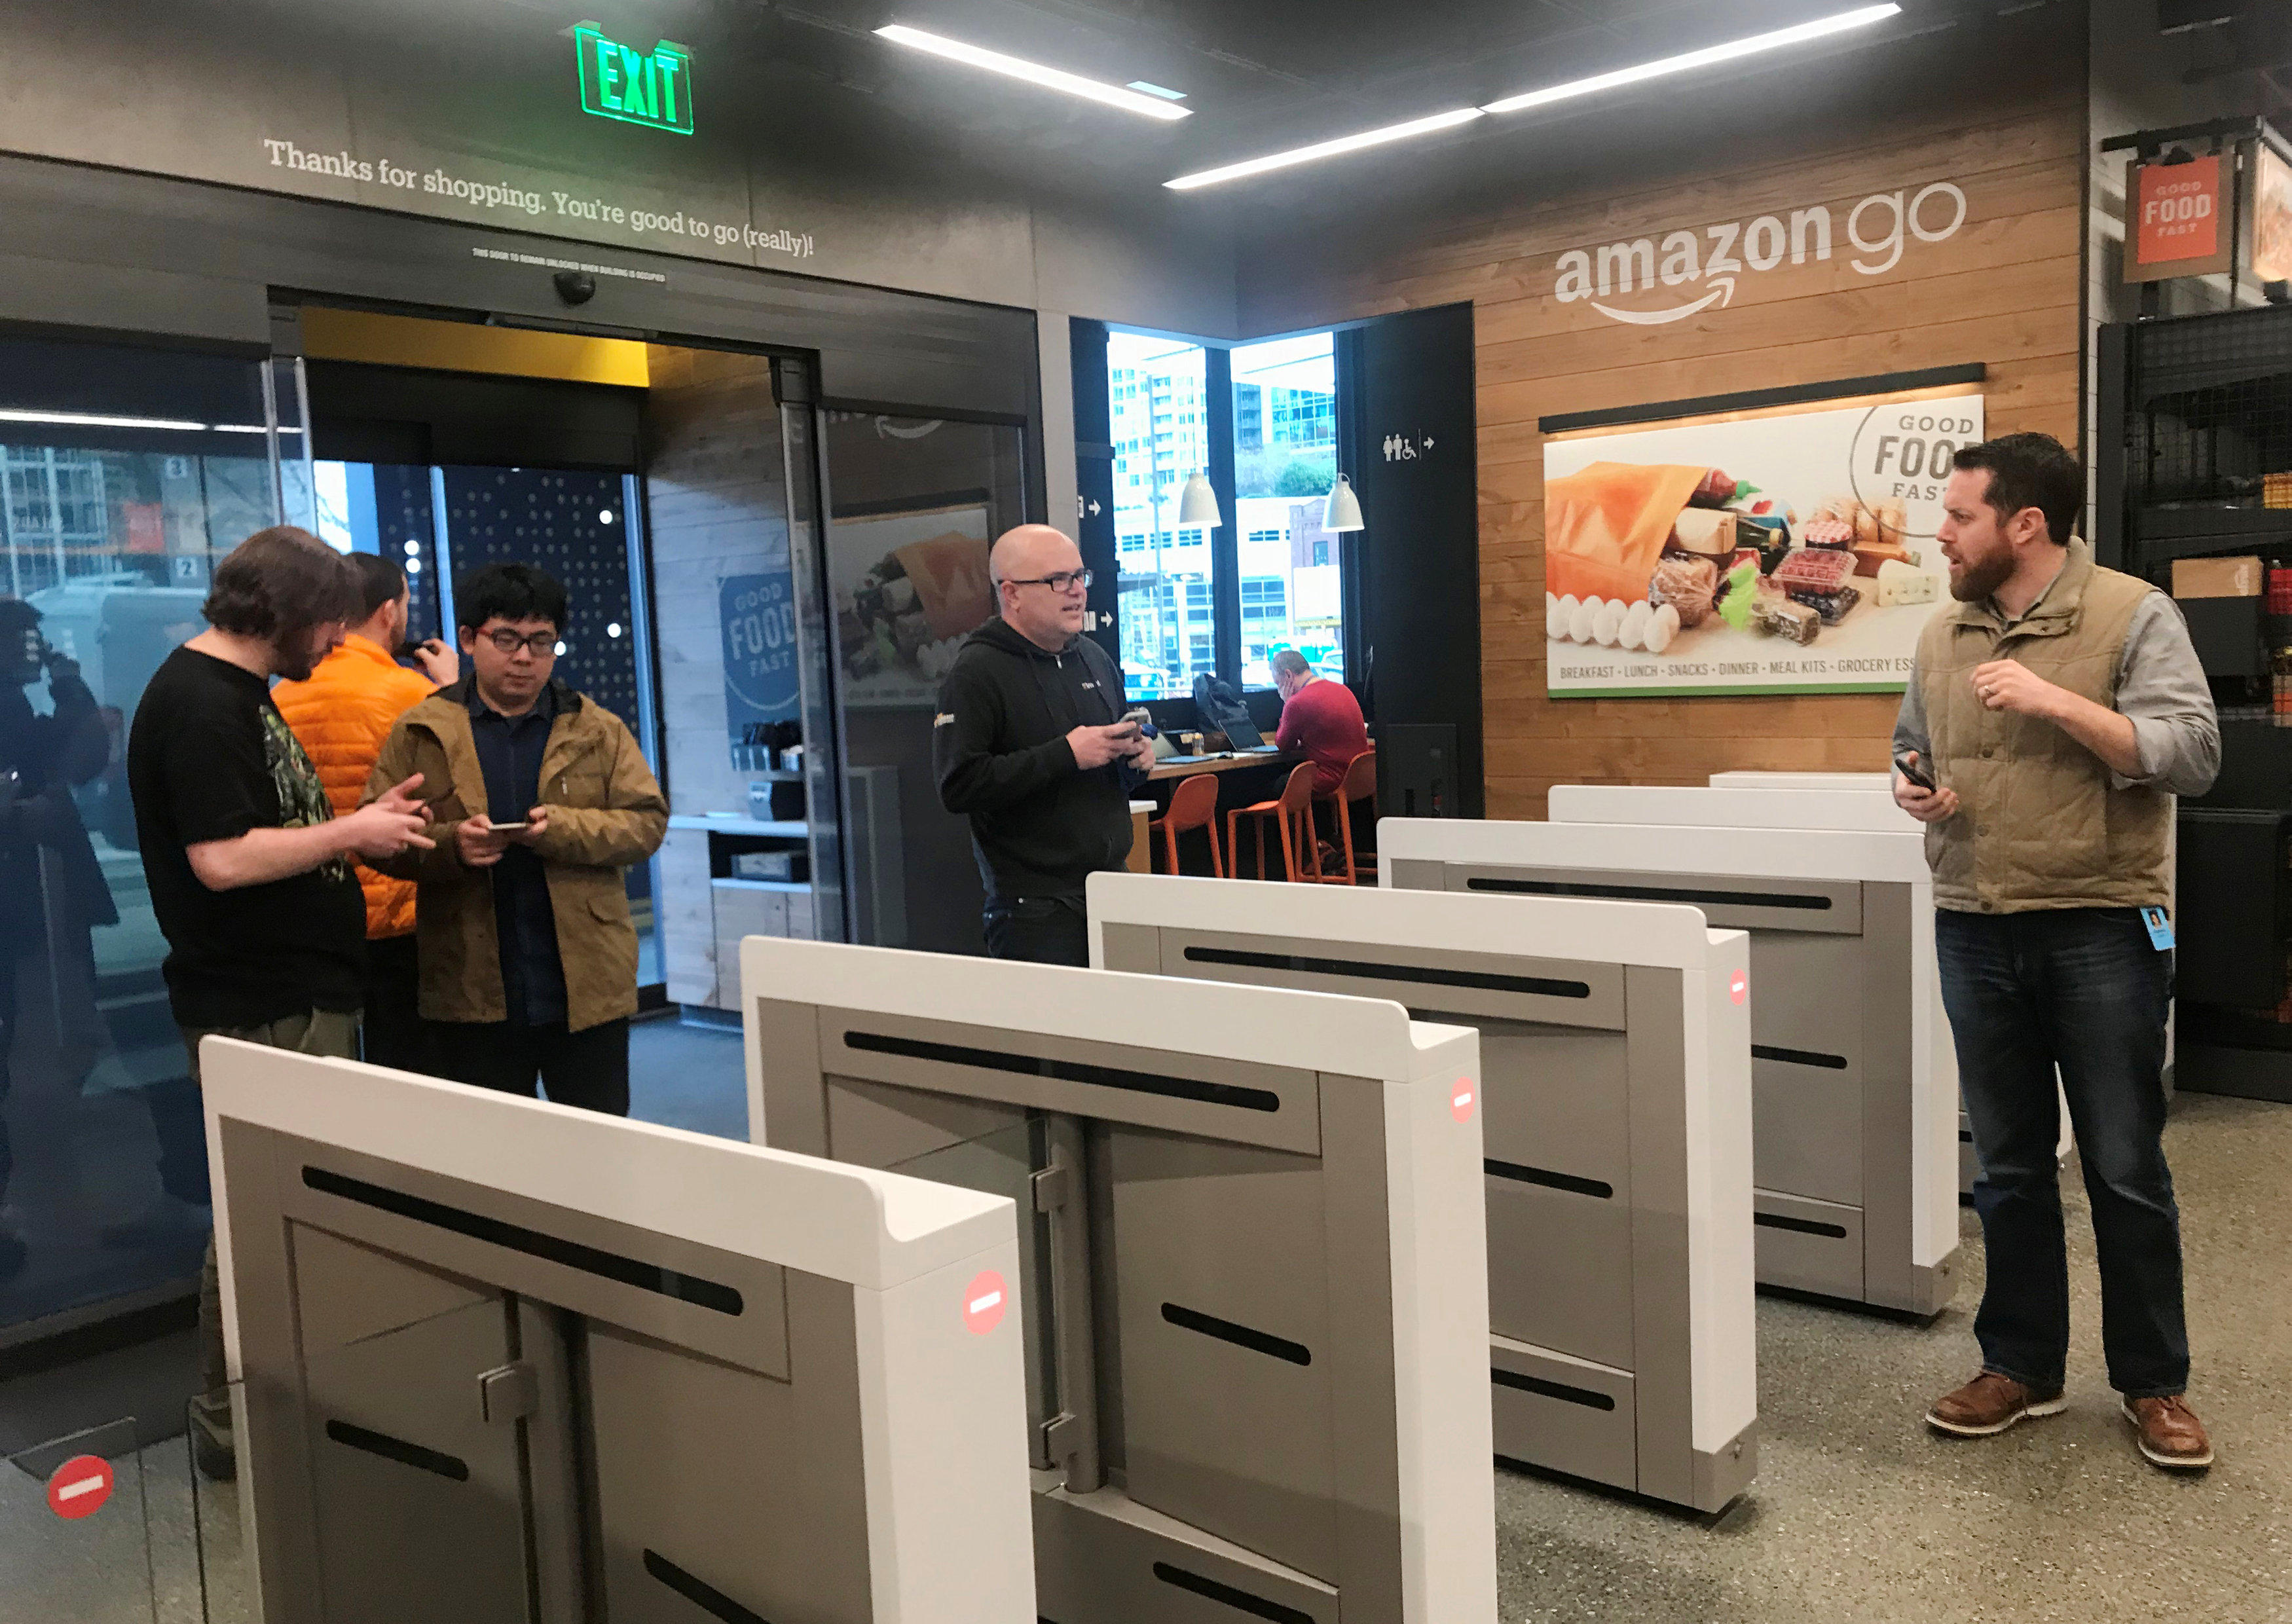 Amazon Opening Quot Go Quot Store With No Cashiers Or Checkout